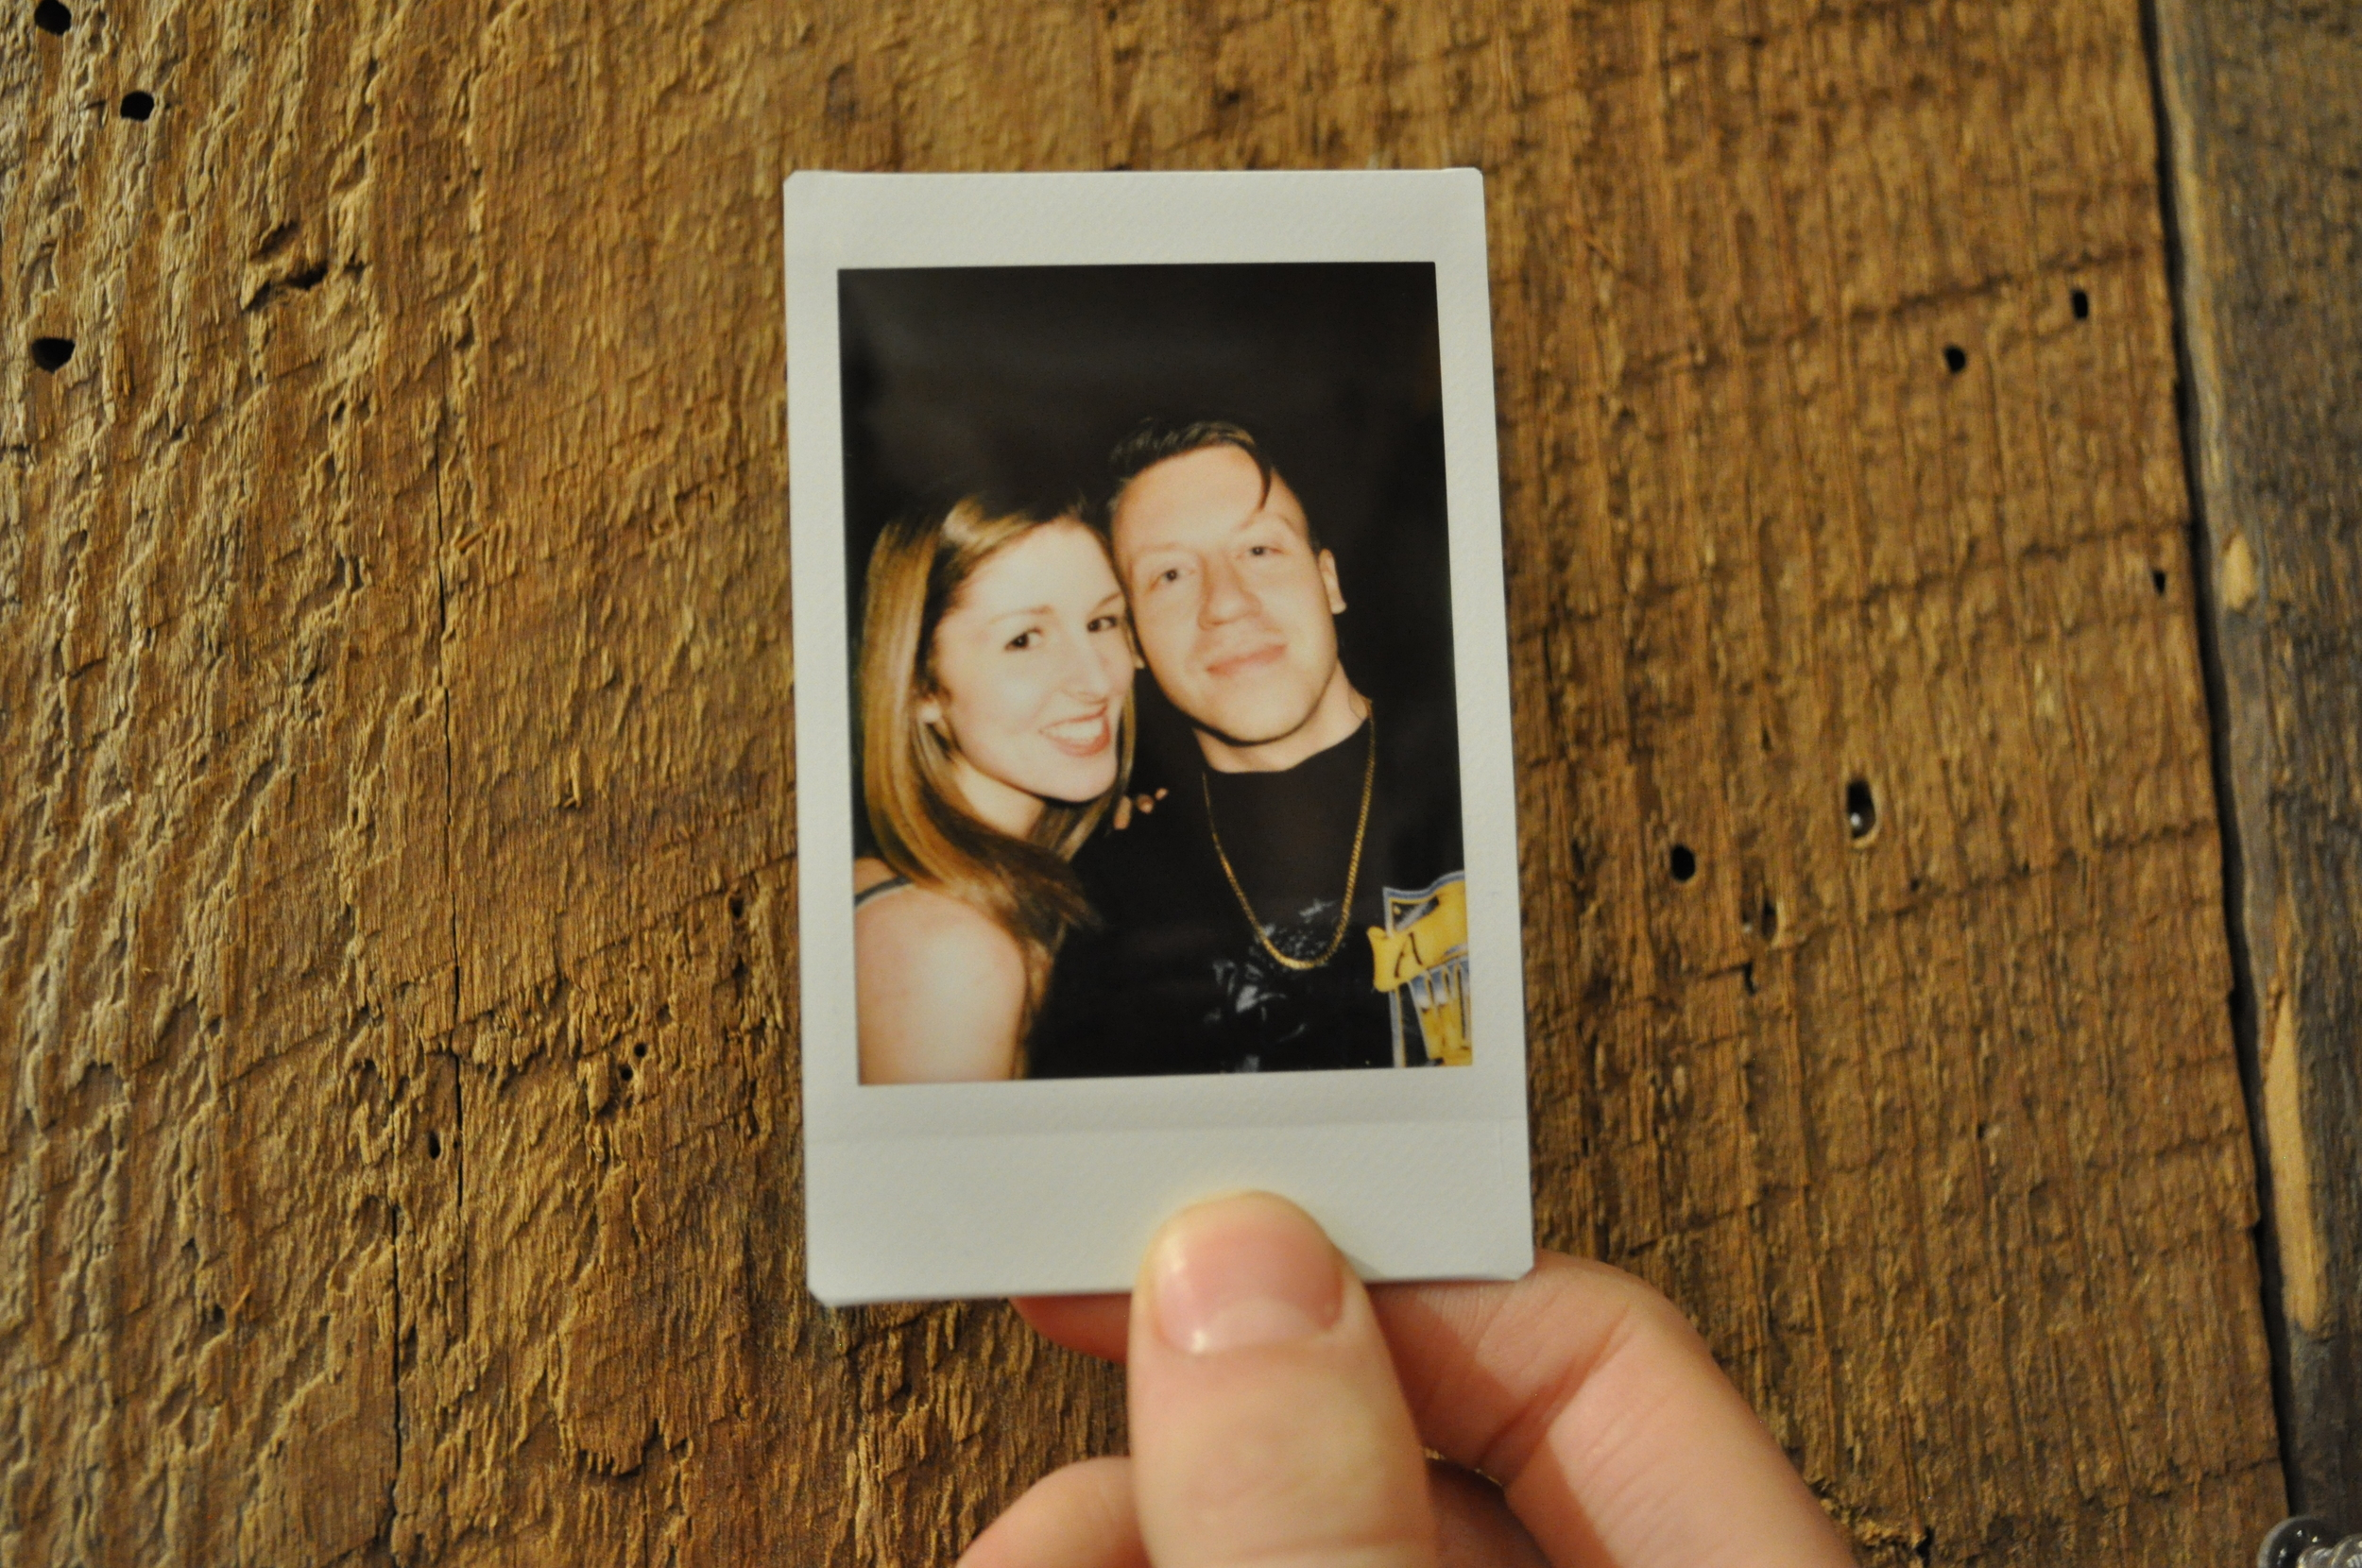 K might win for best photo with Macklemore. Looks like they are a couple in this photo